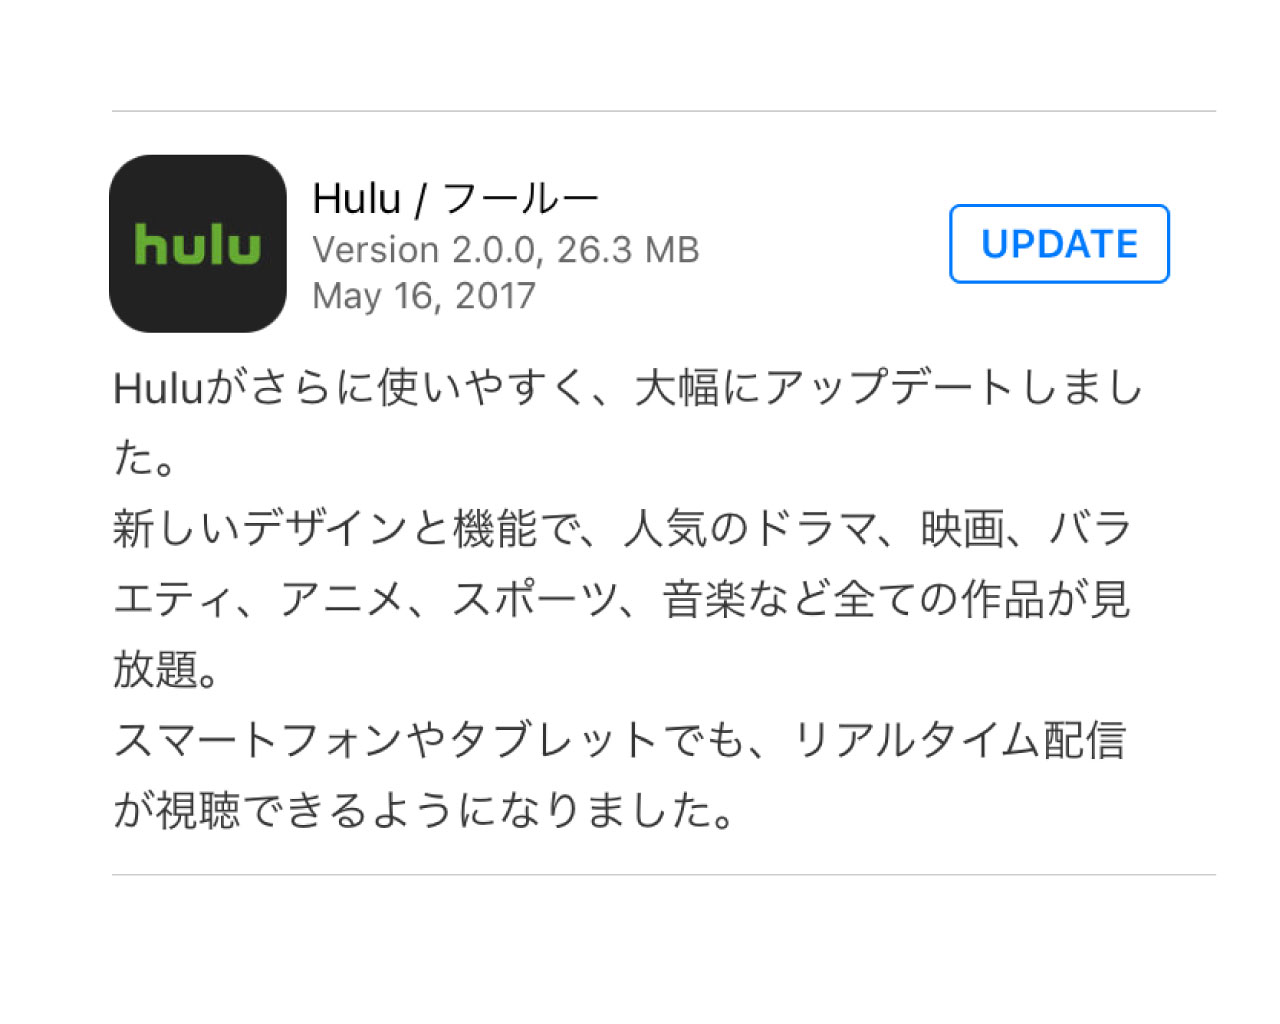 new-hulu-happyon-jp-login-0517-2